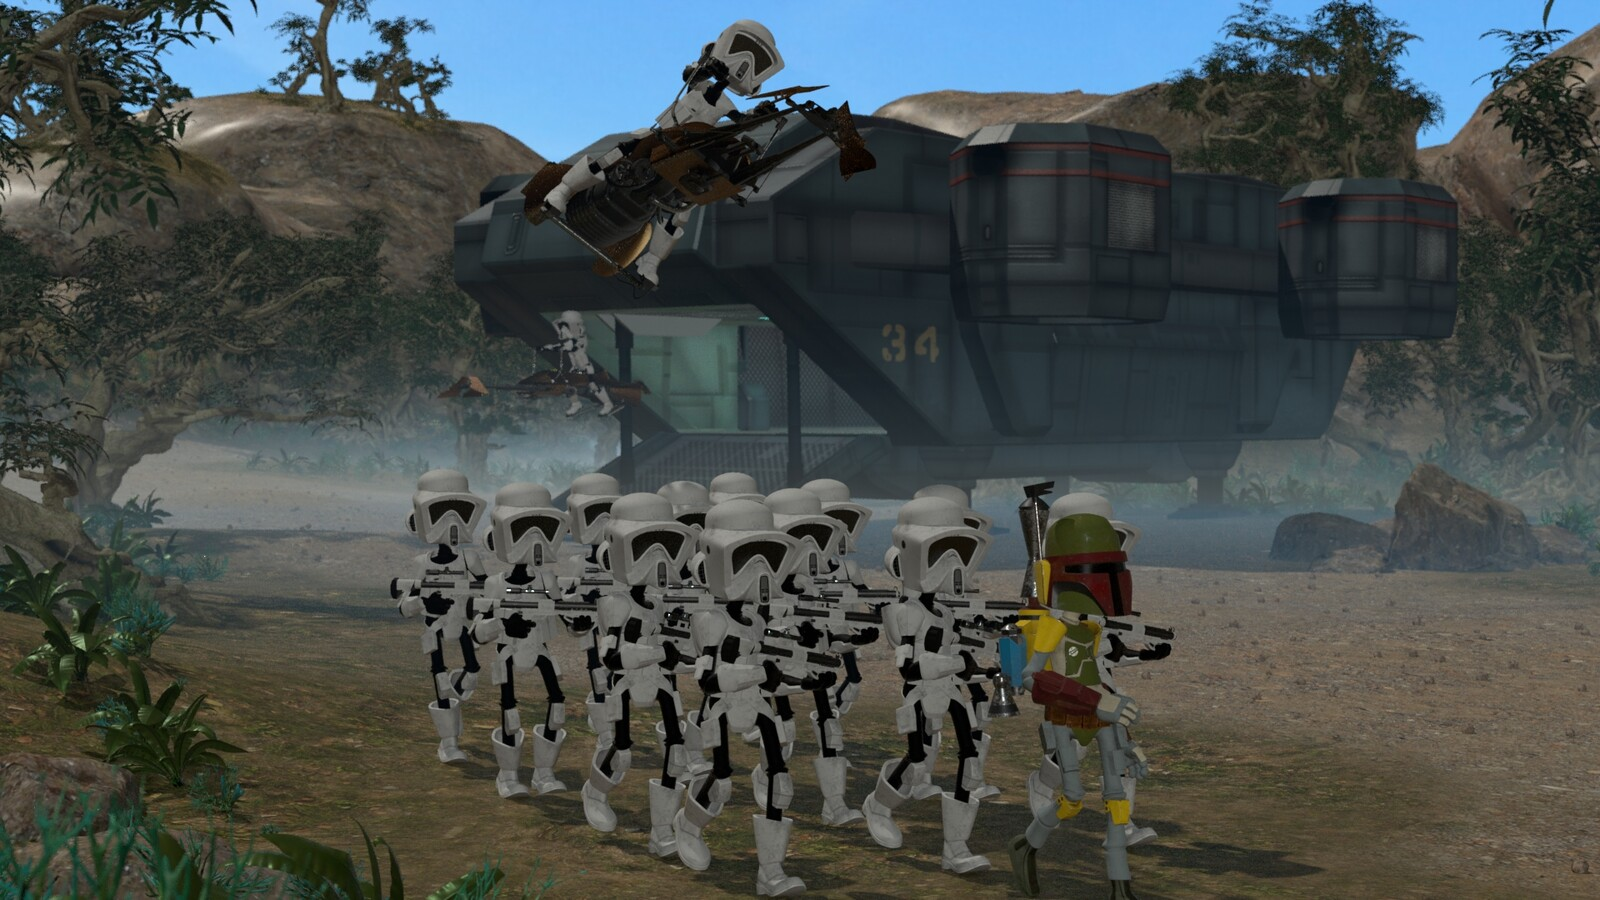 Galaxy Empire Imperial Troops Deployment